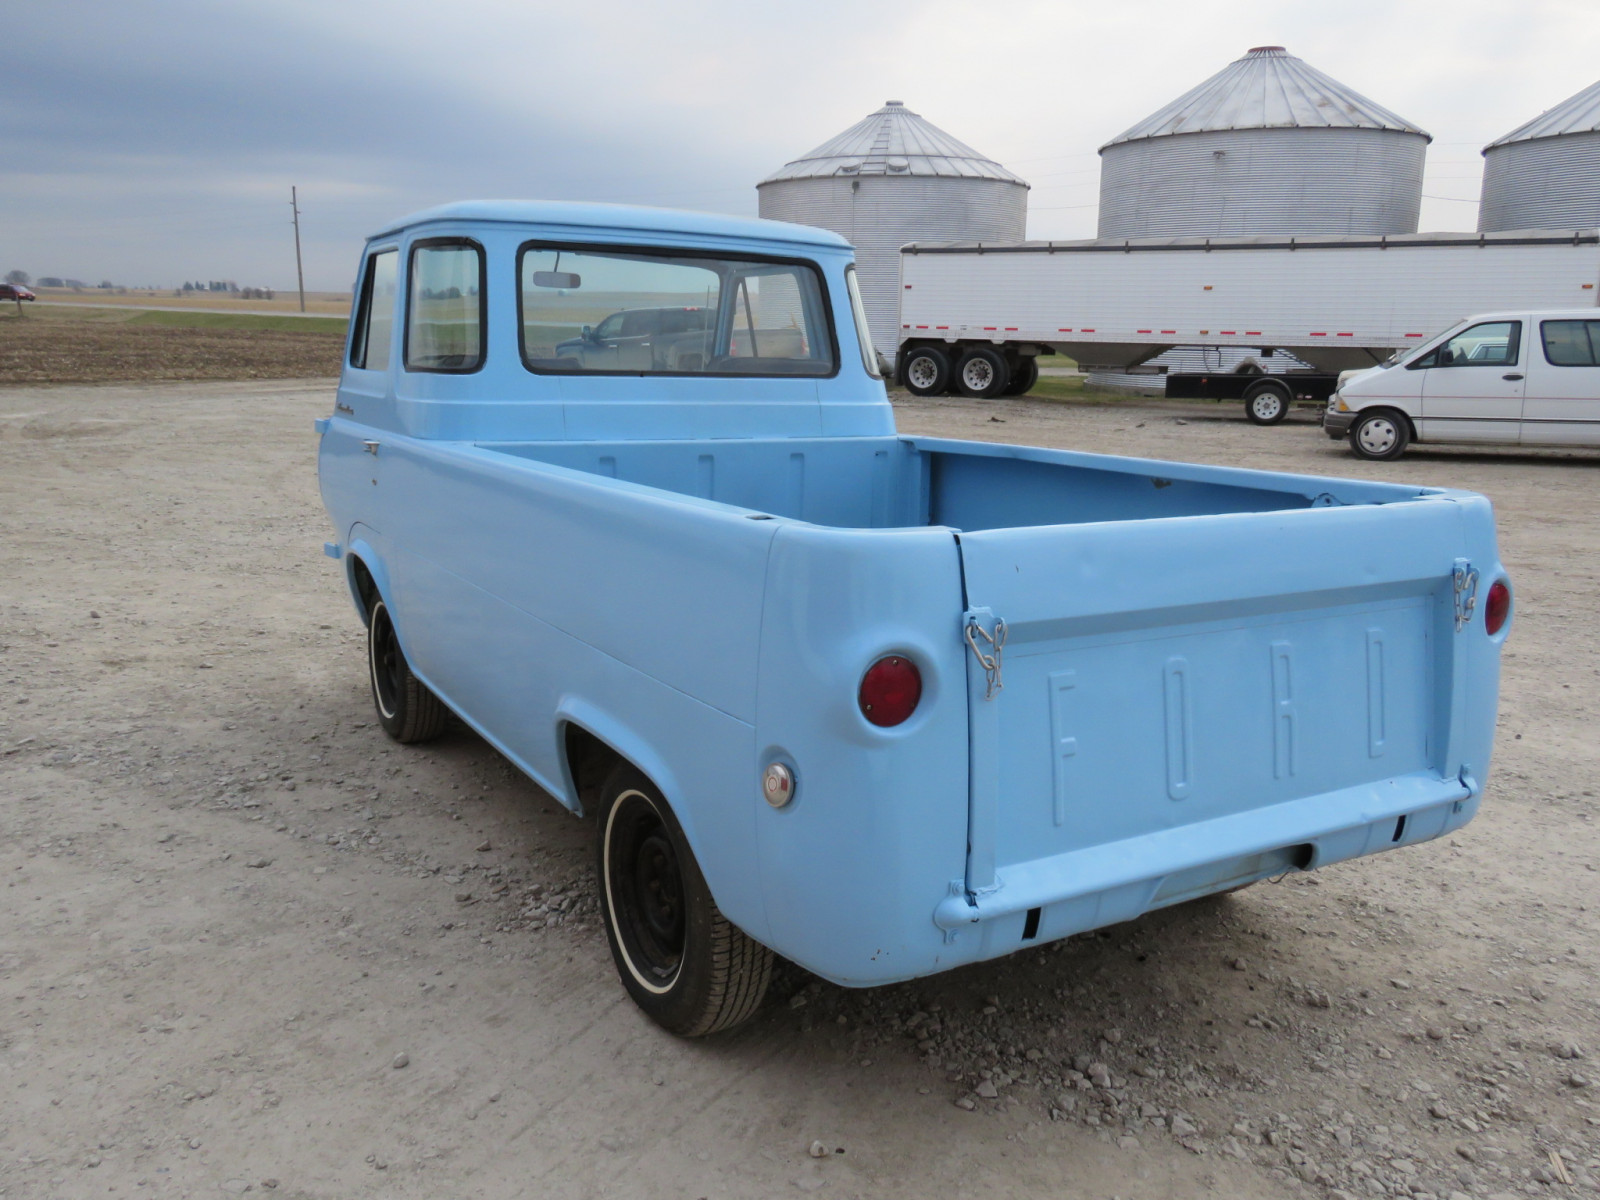 Lot 136g 1961 Ford Econoline Pickup Vanderbrink Auctions Truck Image 4